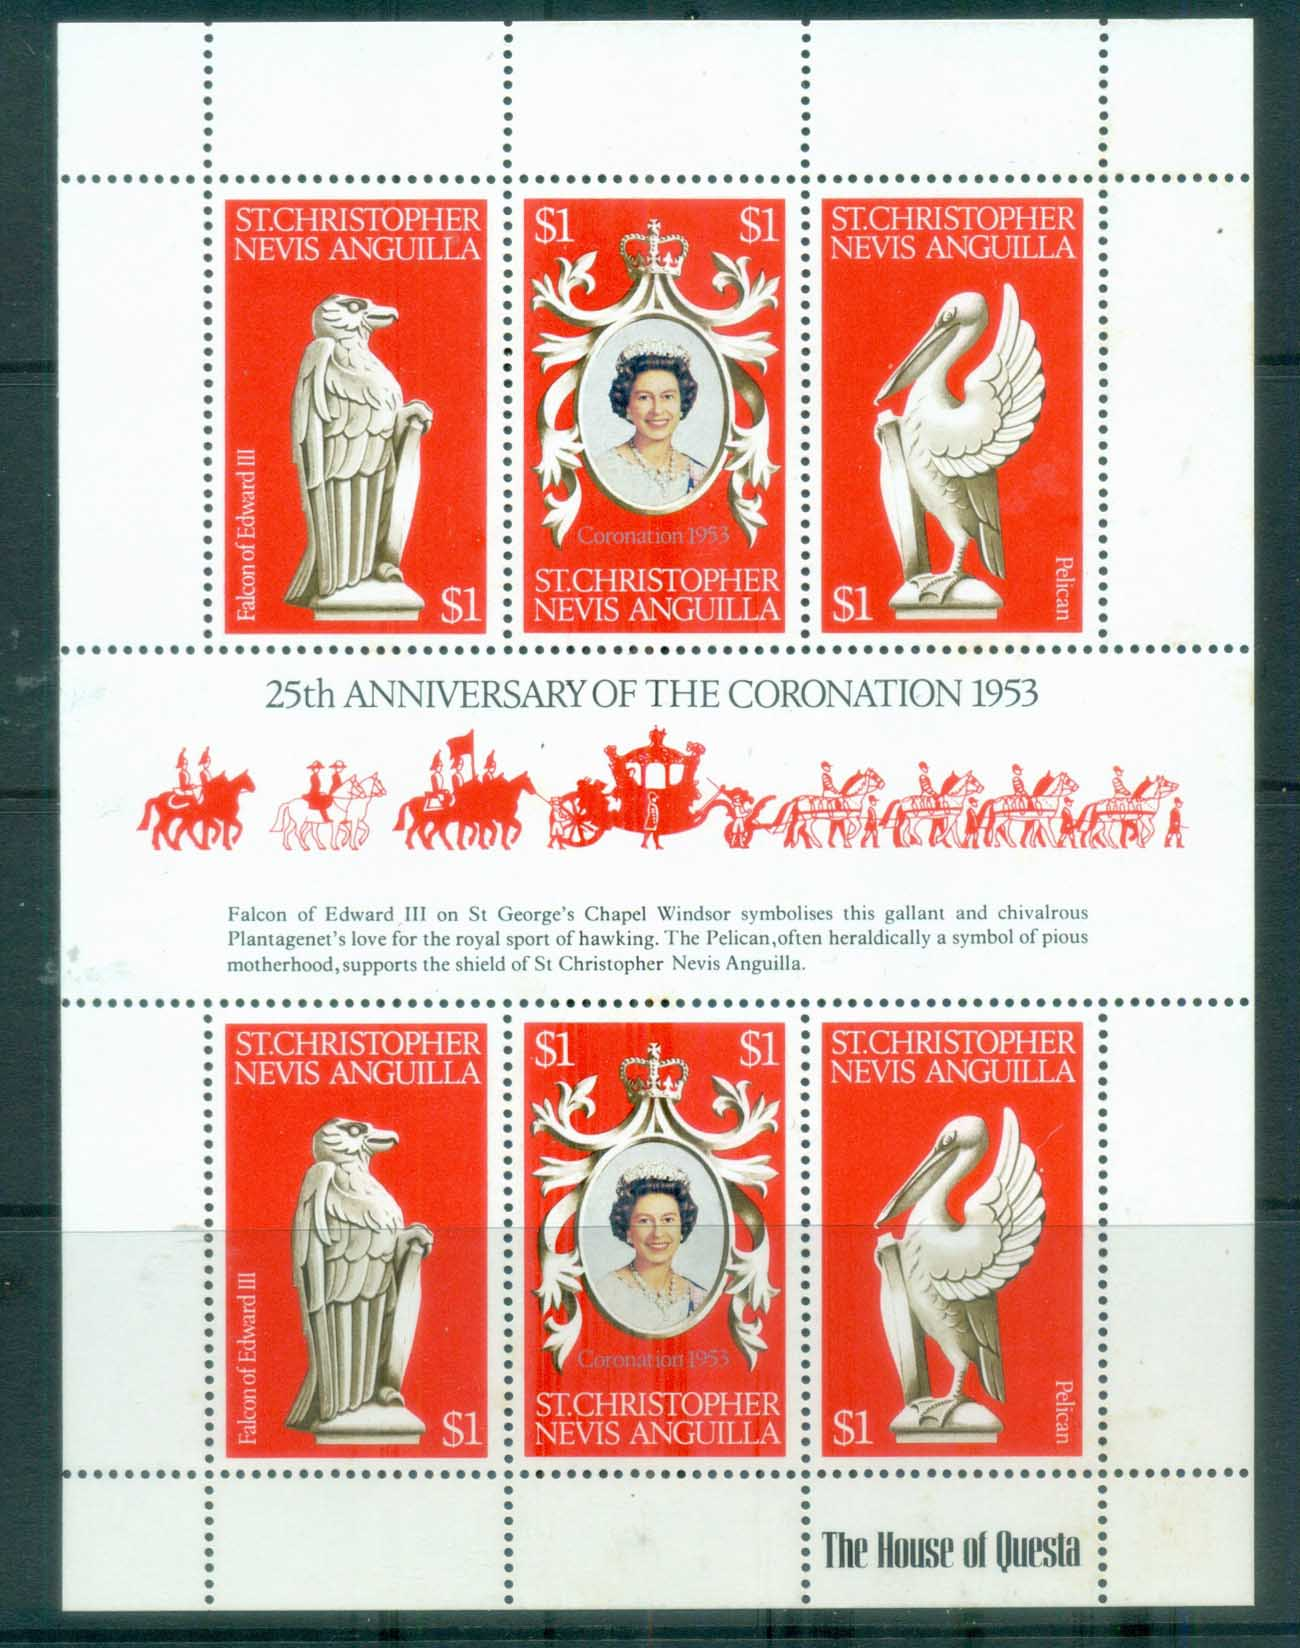 St Christopher Nevis Anguilla 1978 QEII Coronation 25th Anniv. MS MUH